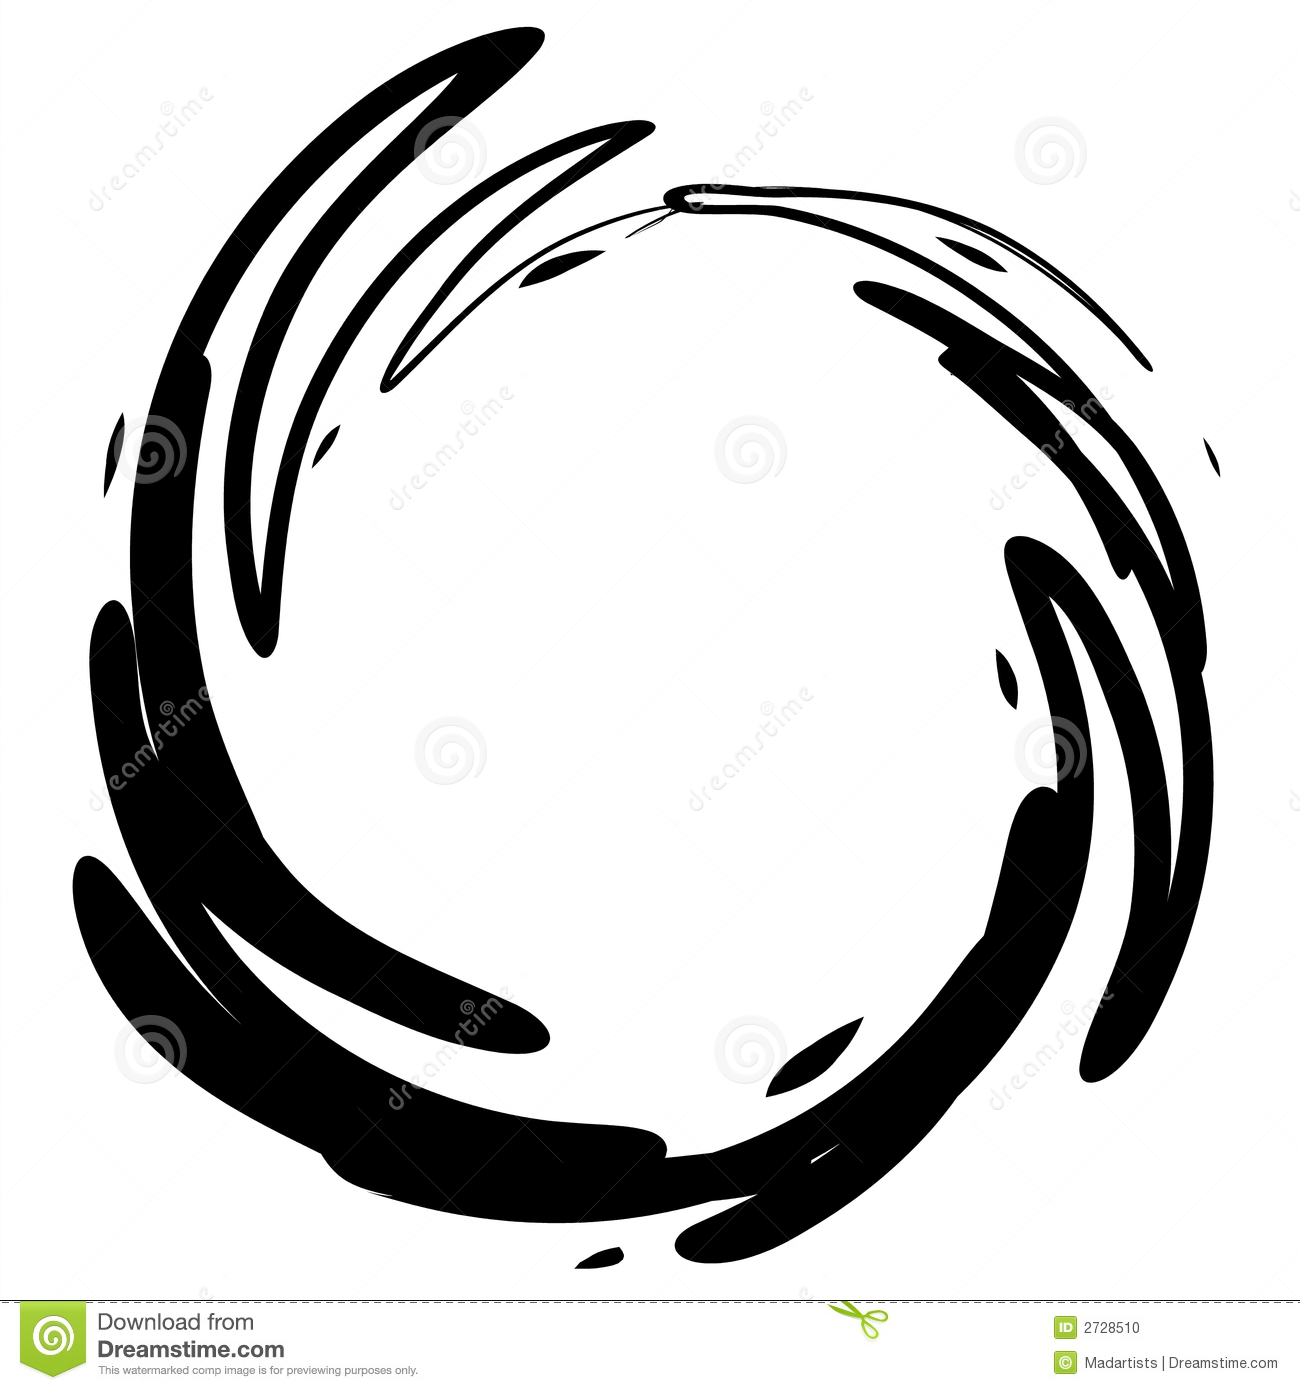 More similar stock images of ` Grunge Black Ink Circle Stain `